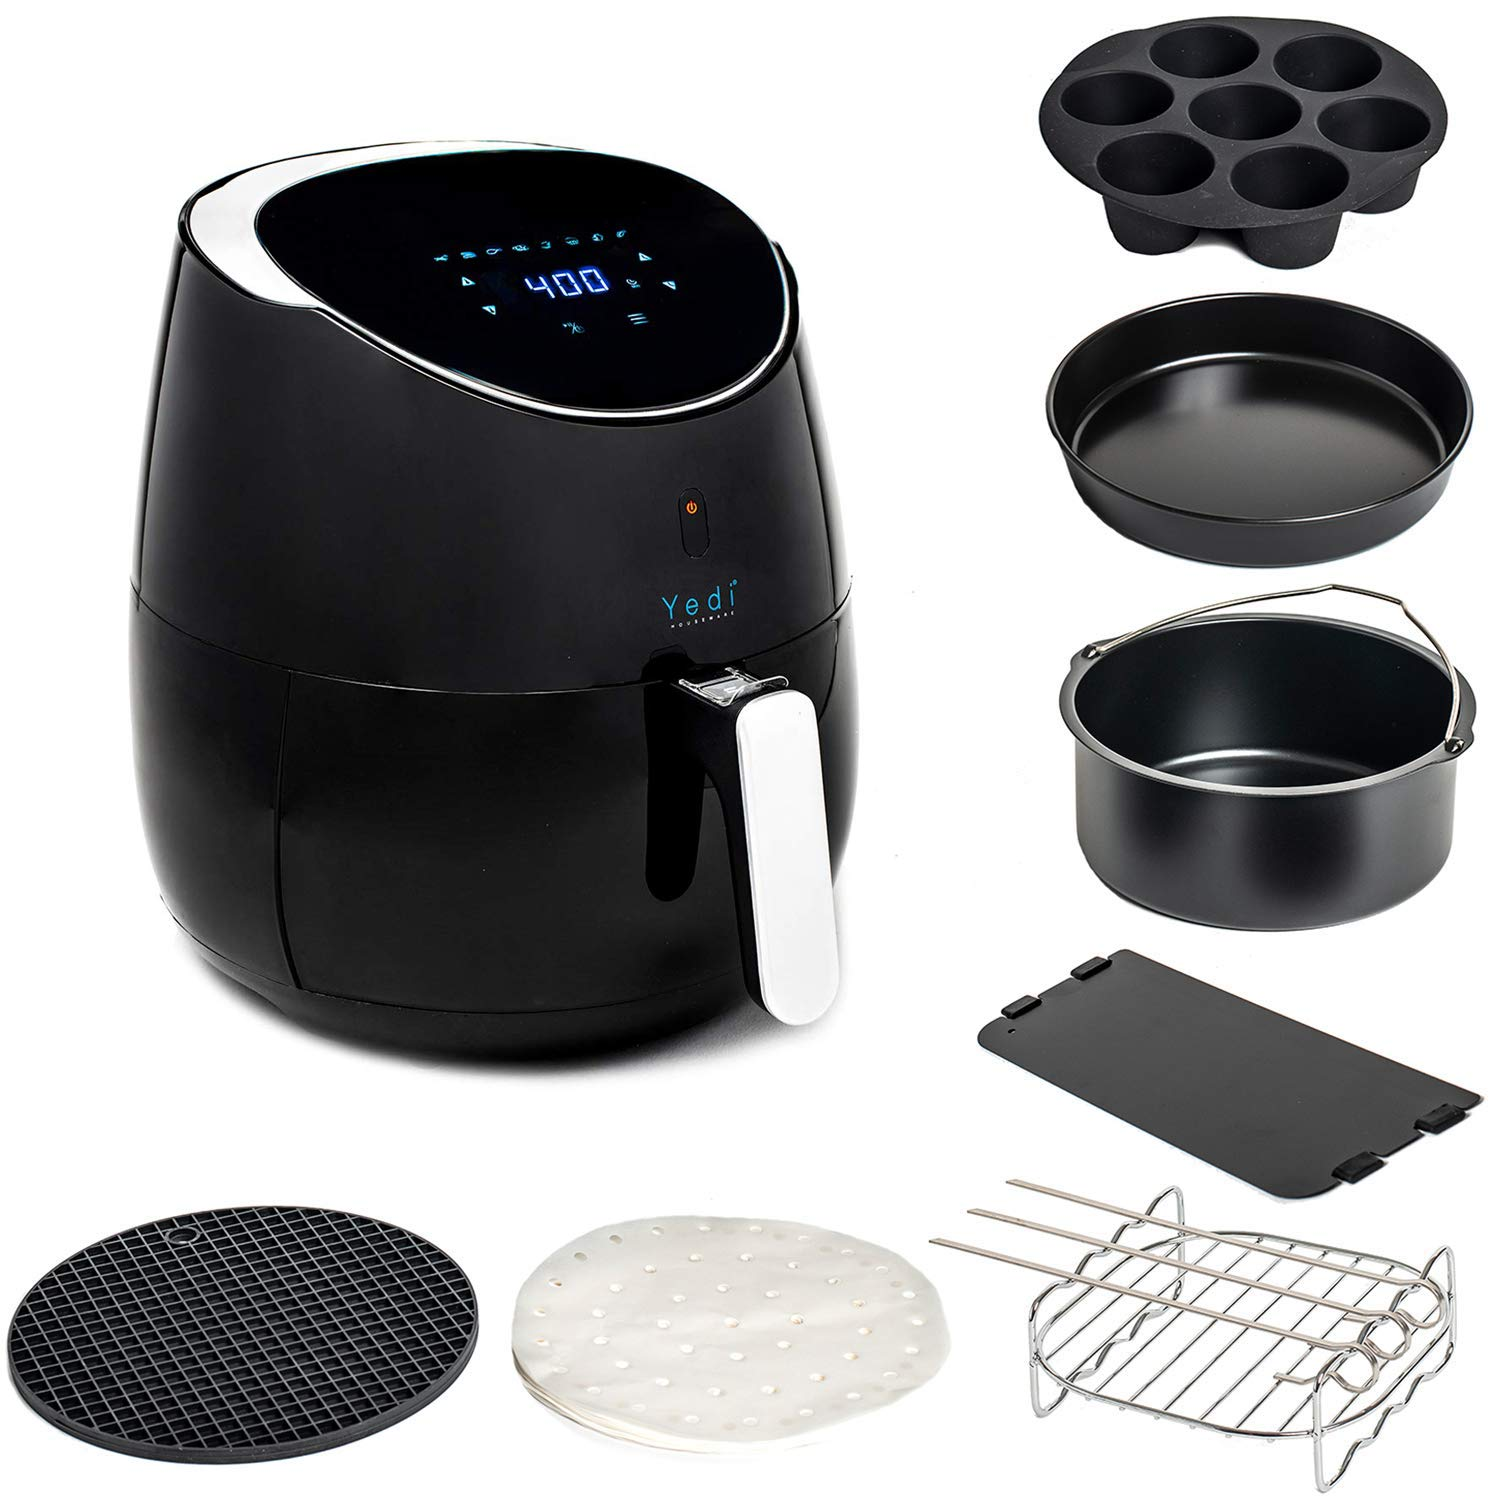 Yedi Total Package Air Fryer, Deluxe Accessory Kit, 100 Recipes Included, Cooking Basket Divider, 2Yr Warranty. Healthy Air Crisper Oiless Oven (3.7 Qt)